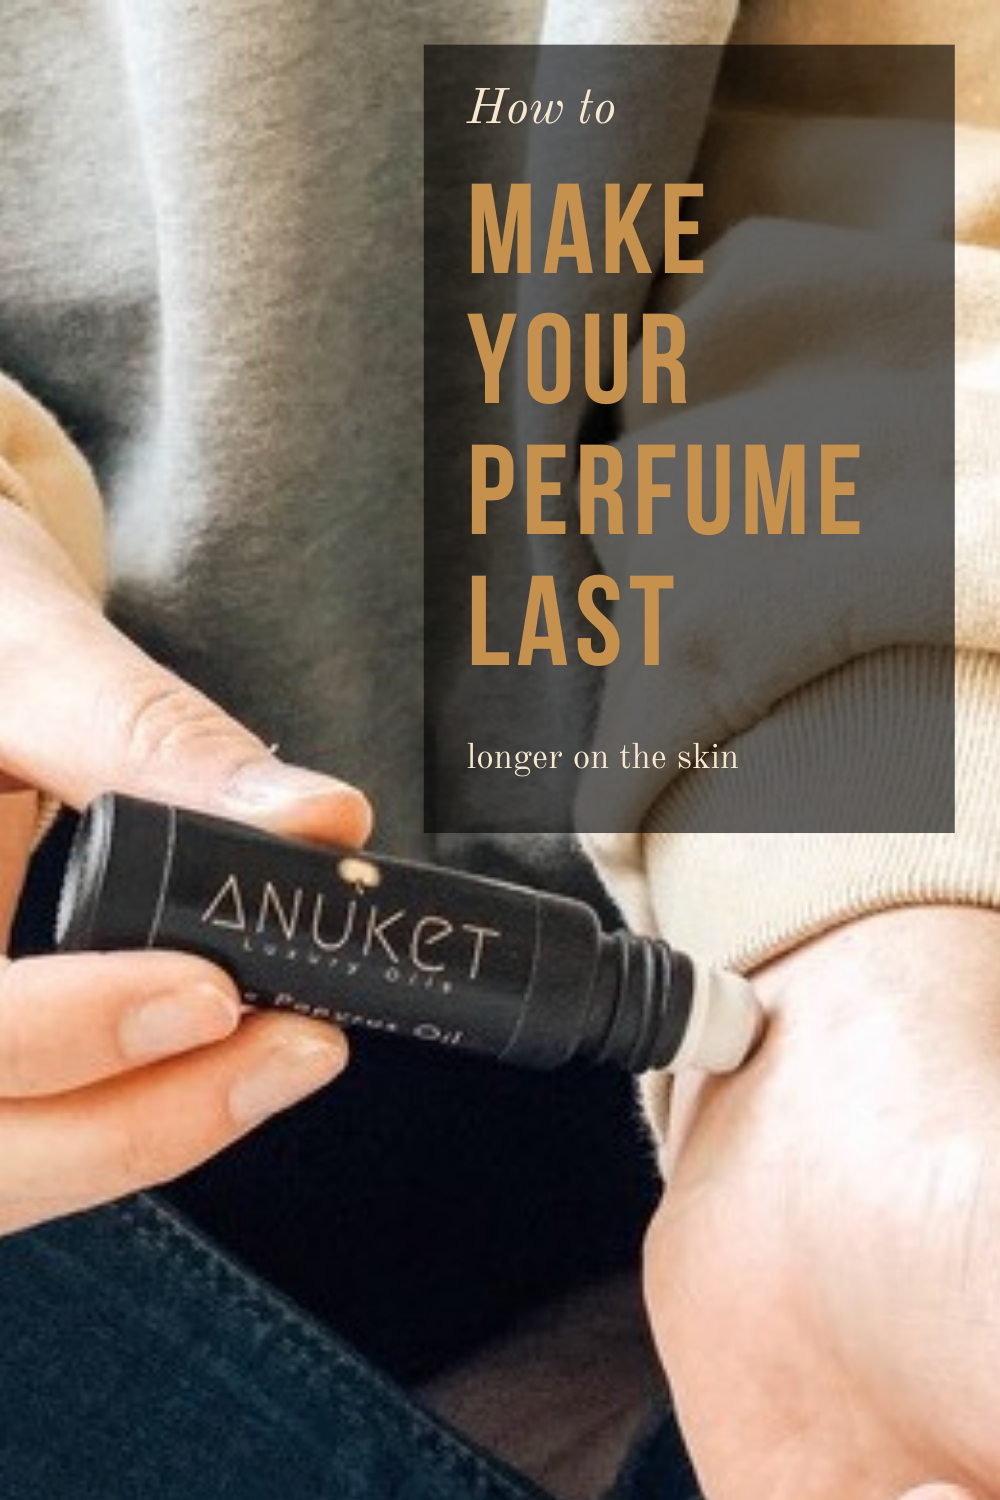 Woman putting on Anuket roll-on fragrance oil, with words how to make perfume last longer on the skin